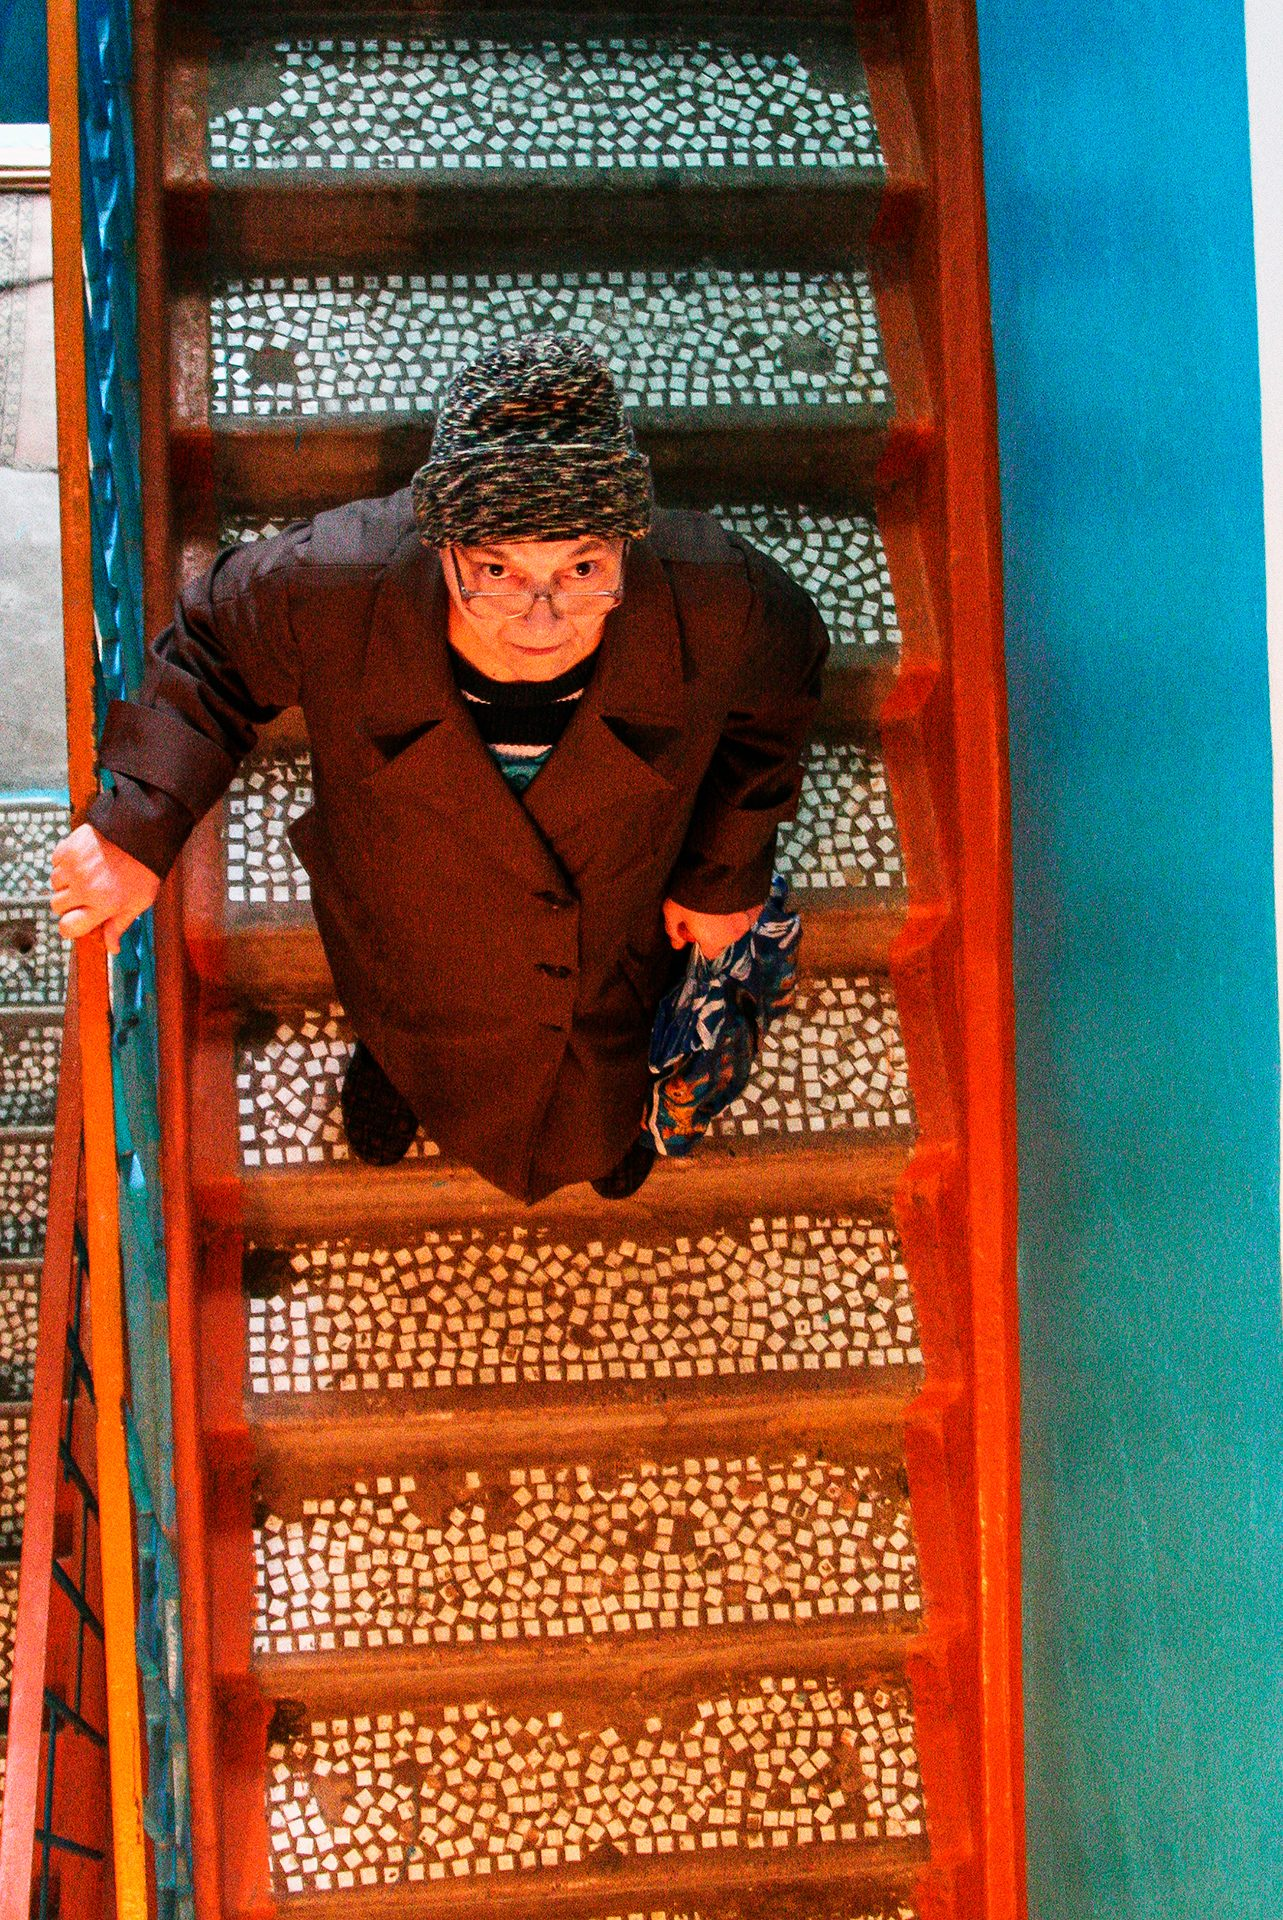 Look from the bottom, Almaty, granny, old, elderly, stairs, upside, hat, soviet